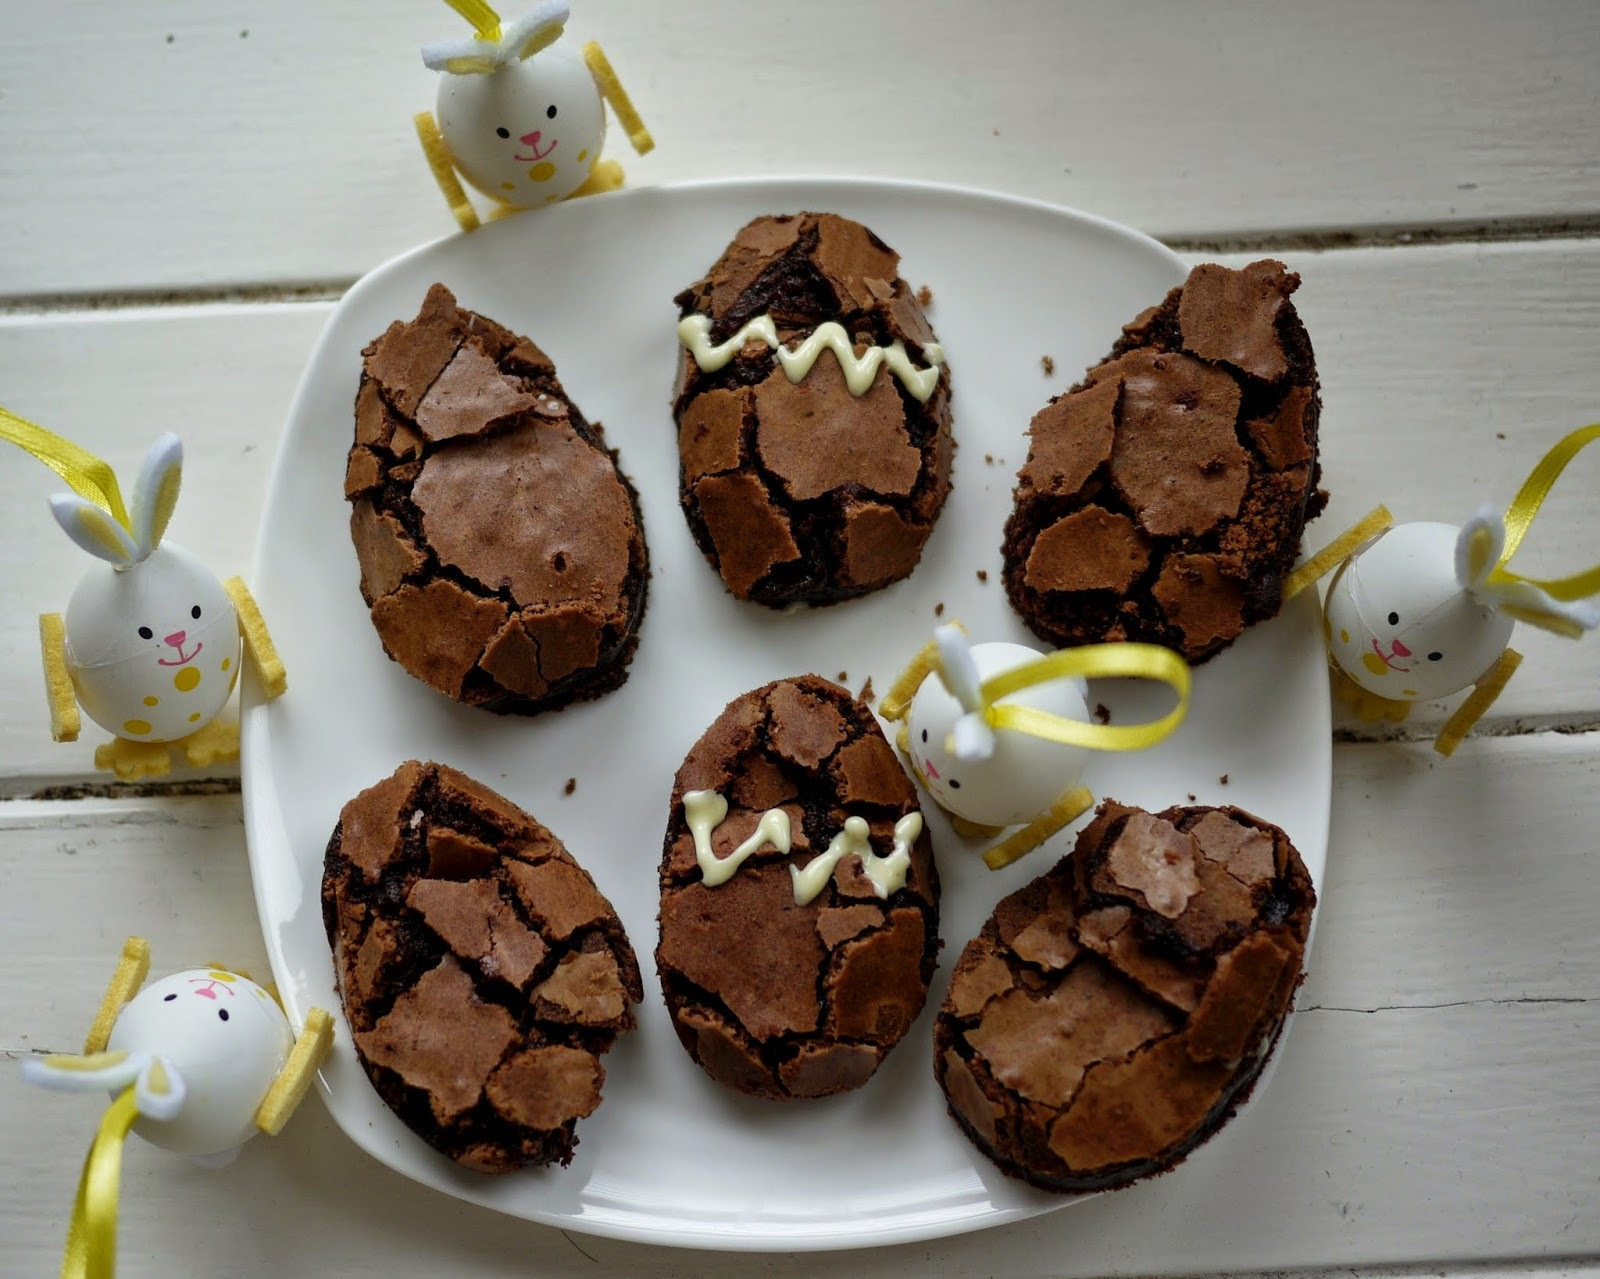 Easter Egg Brownies with Waitrose #GoodEgg